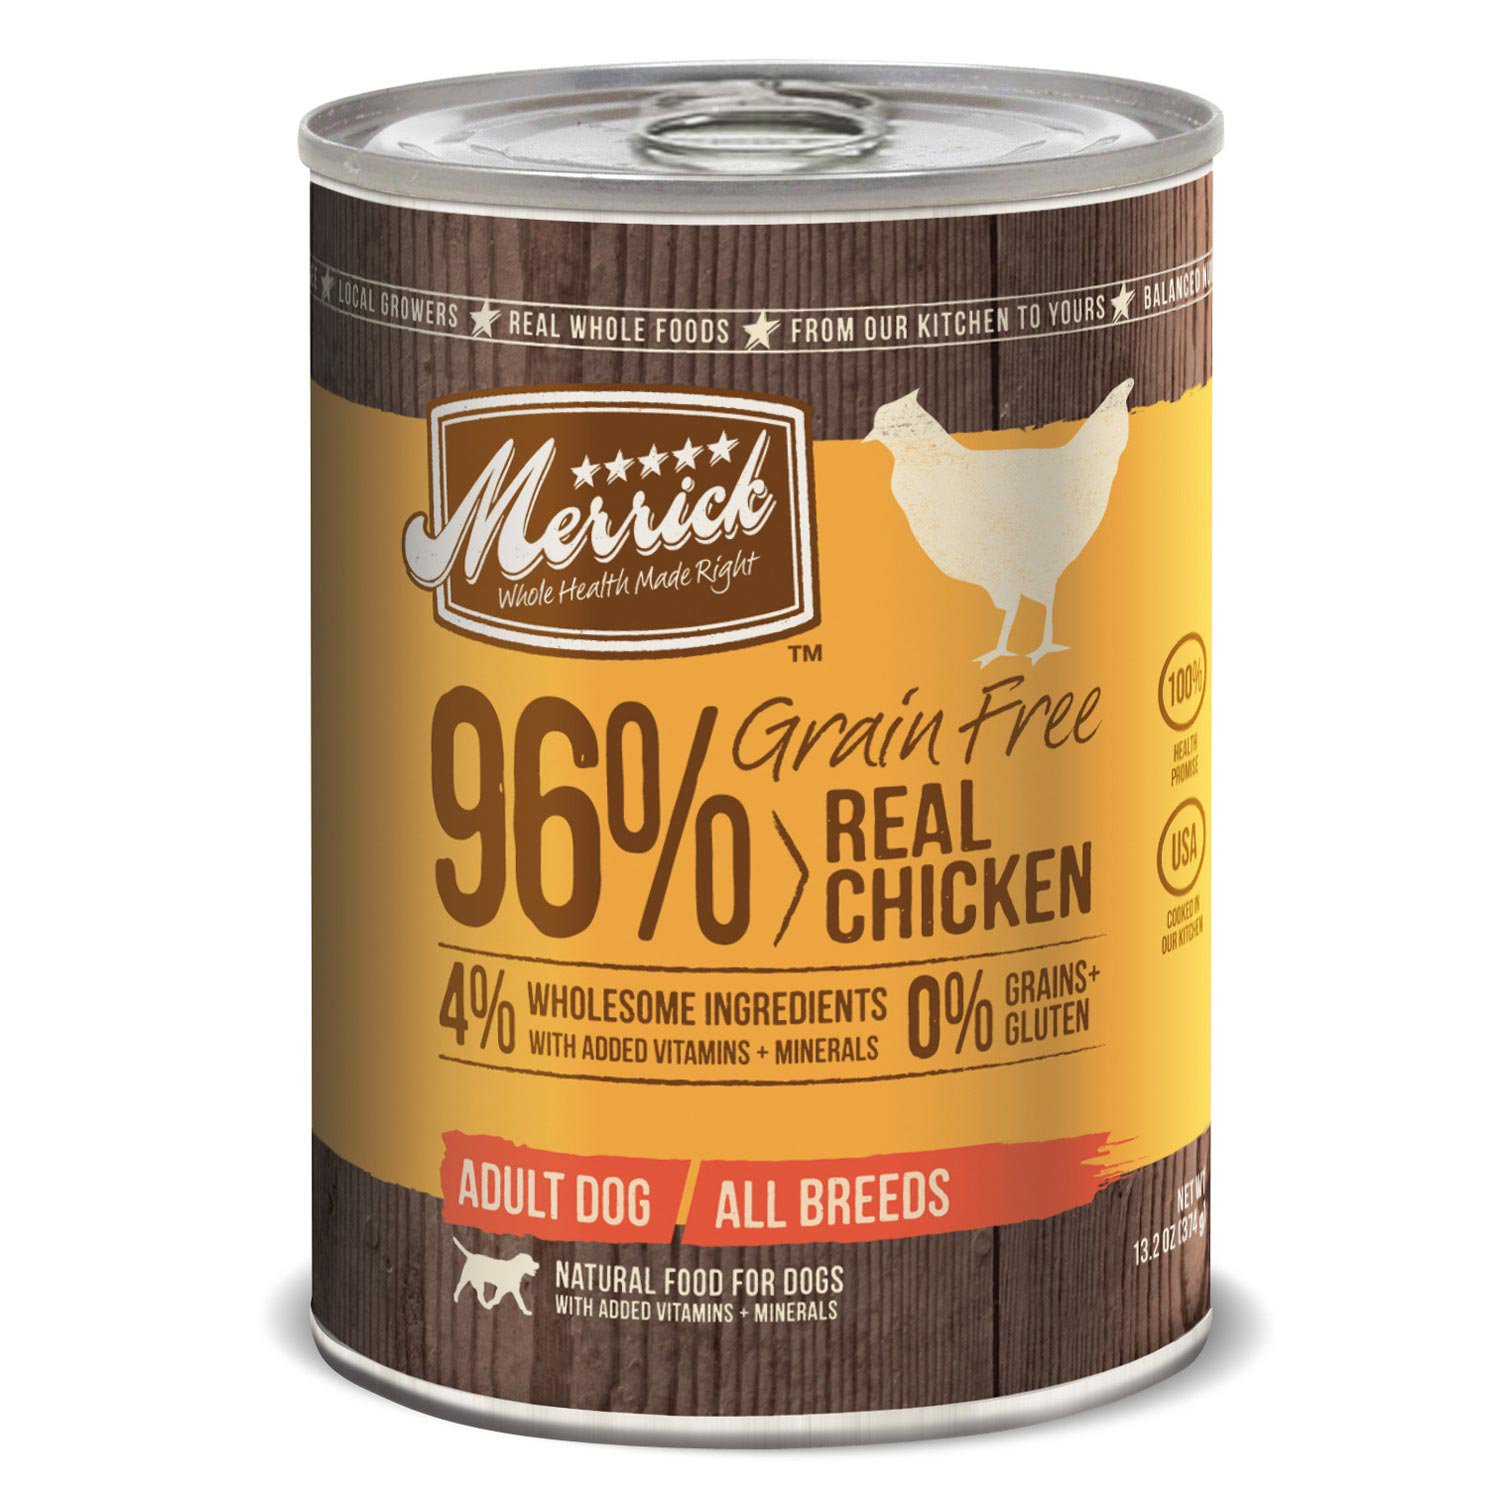 Merrick Grain Free 96 Real Chicken Wet Dog Food Petco